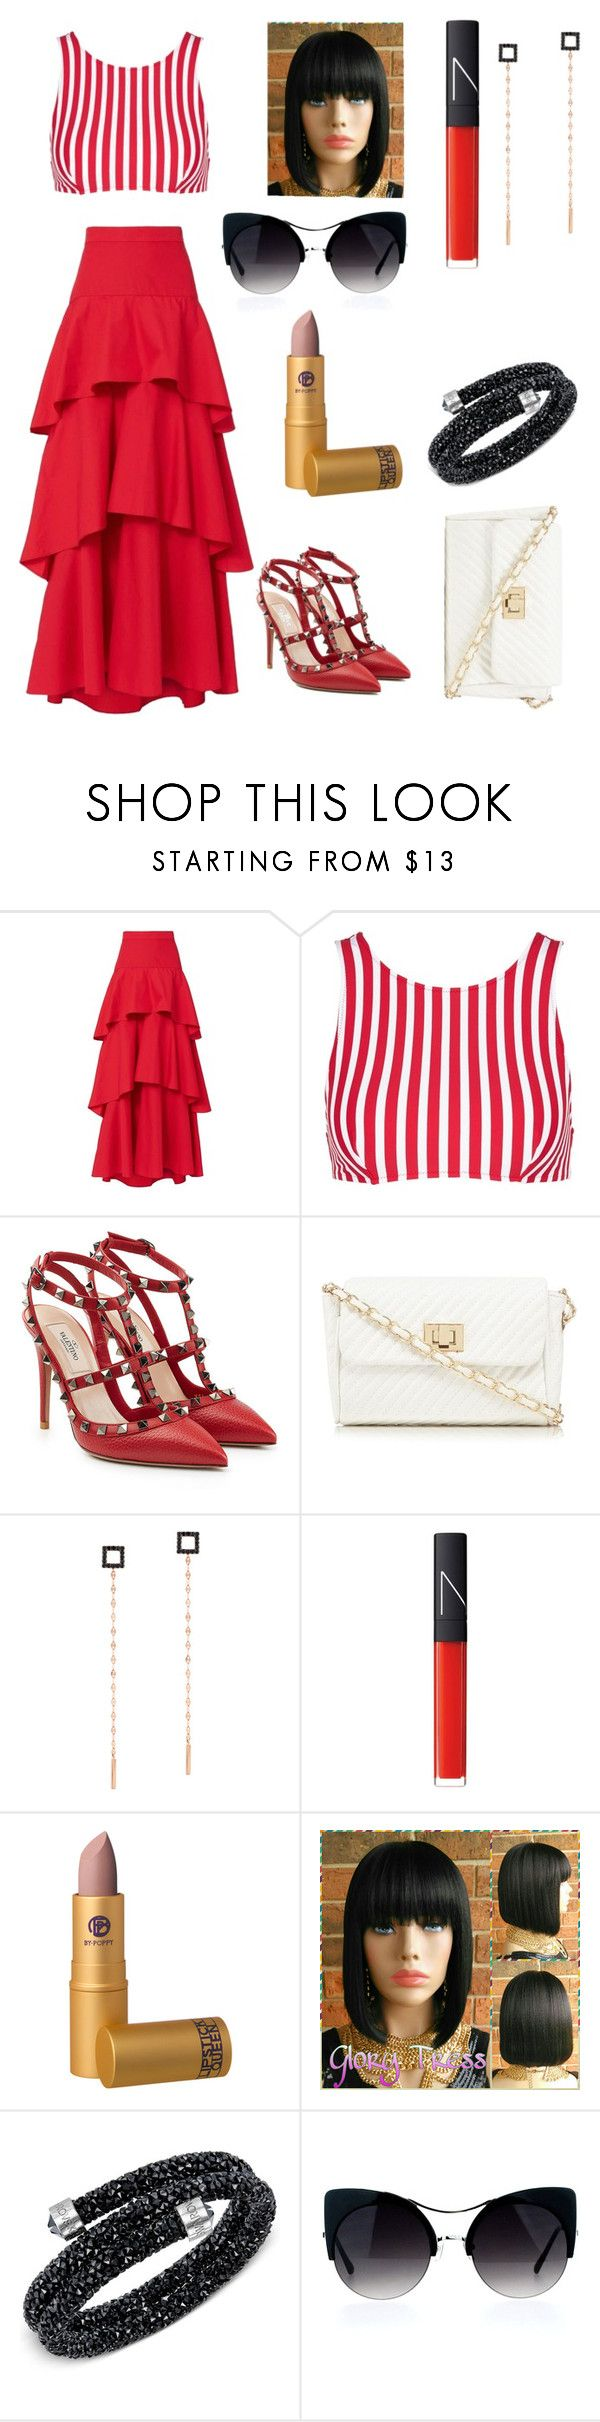 """""""Untitled #501"""" by mamatoodie-1 ❤ liked on Polyvore featuring MDS Stripes, Araks, Valentino, Red Herring, Lana, NARS Cosmetics, Lipstick Queen and Swarovski"""